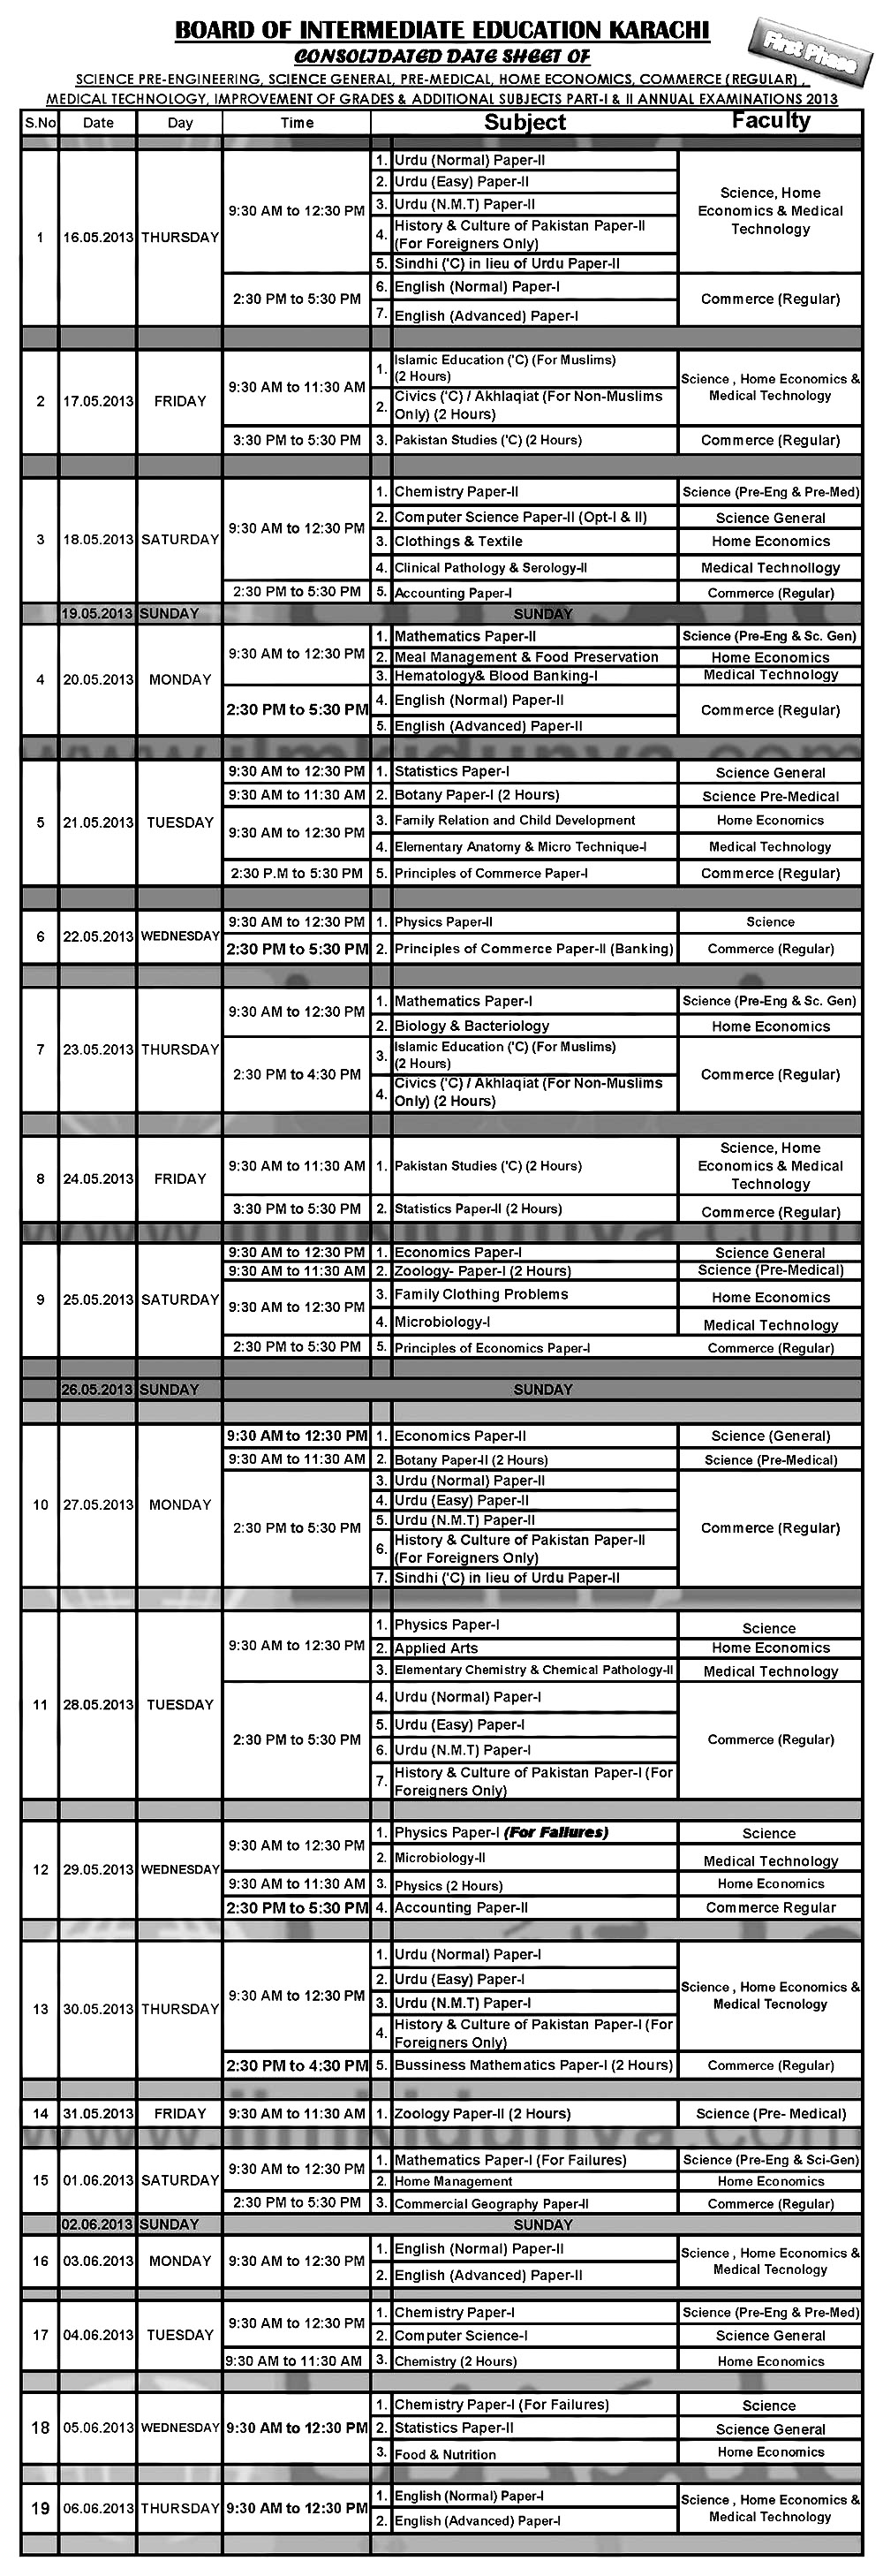 biek-karachi-inter-date-sheet-2013 inter HSSC part-i-ii exams 2013 karachi board date sheet Higher Secondary School Certificate